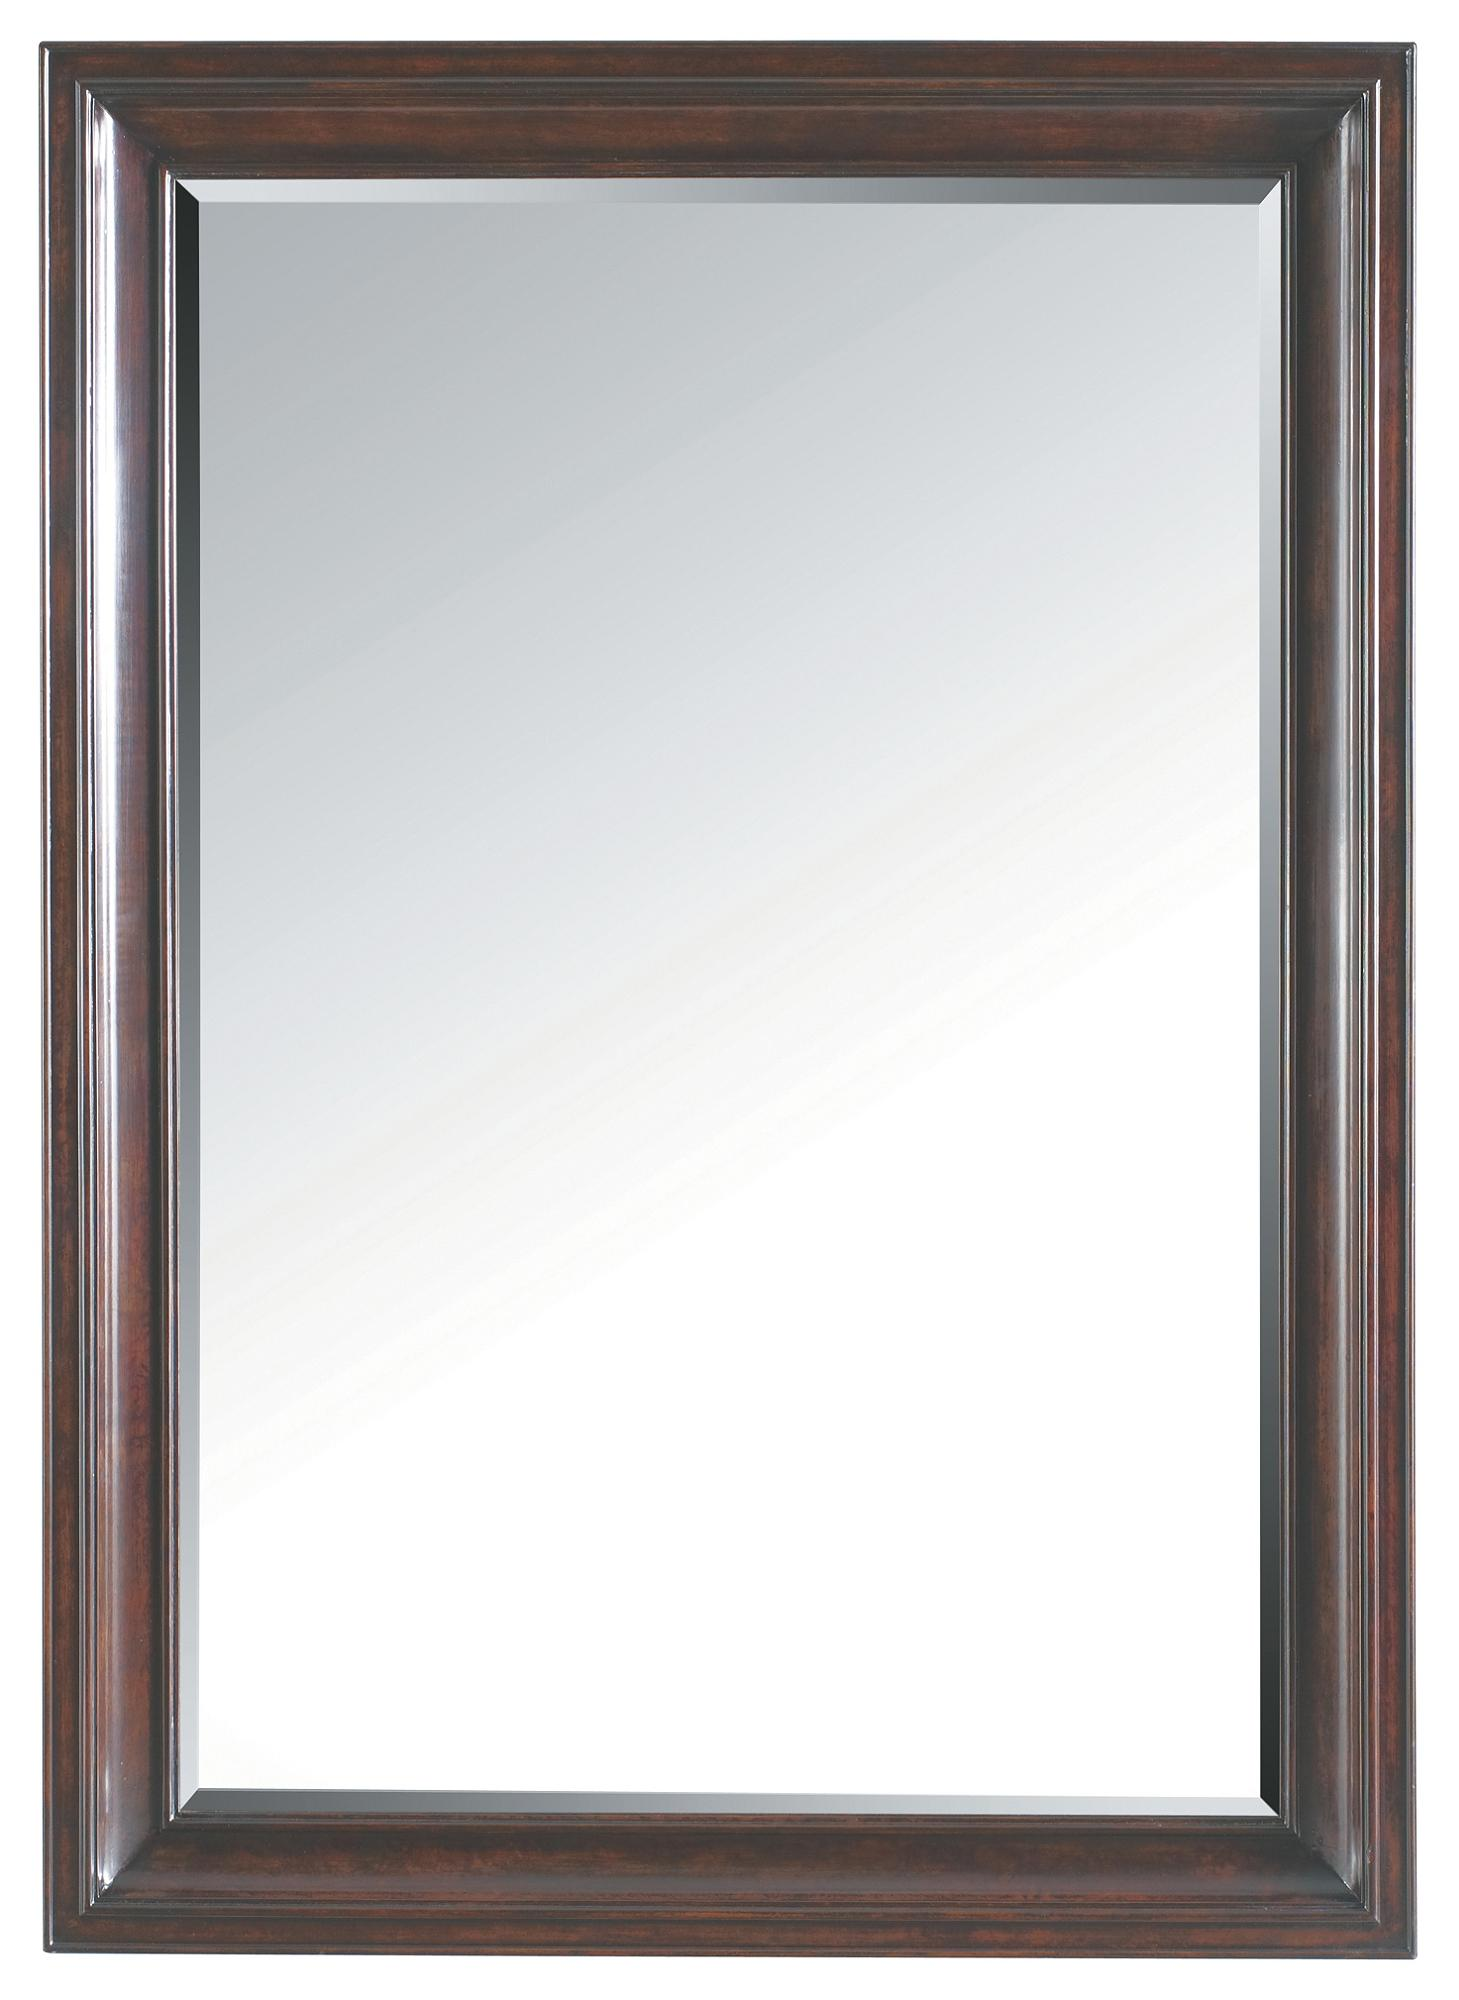 Stanley Furniture Transitional Landscape Mirror - Item Number: 042-13-30